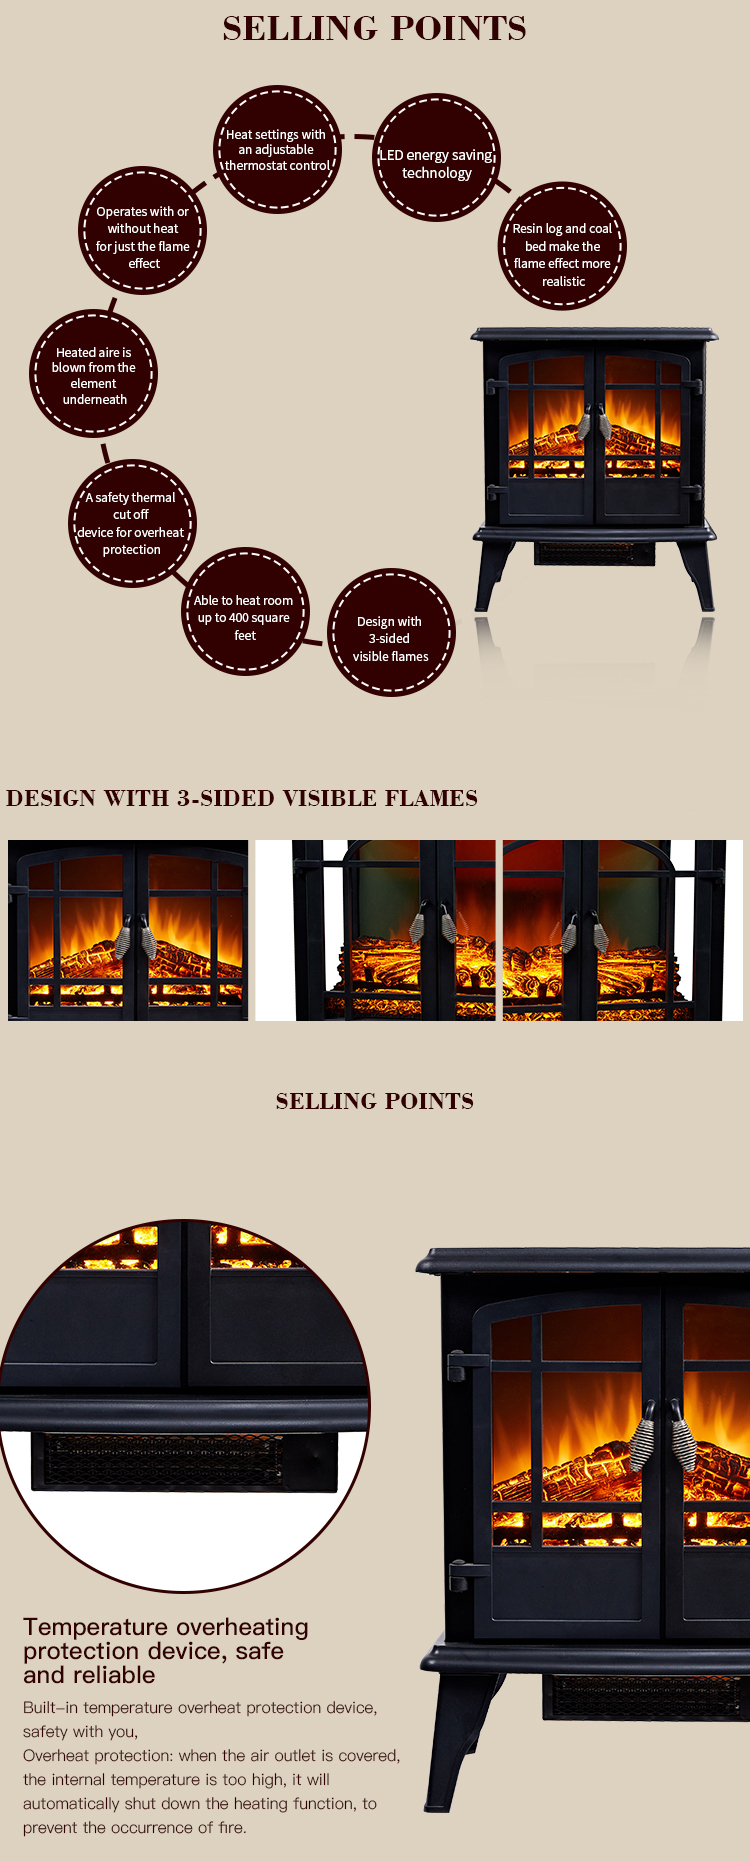 25 inch Black 3d View Sided Decor Flame Effect Electric Fireplace Stove Heater